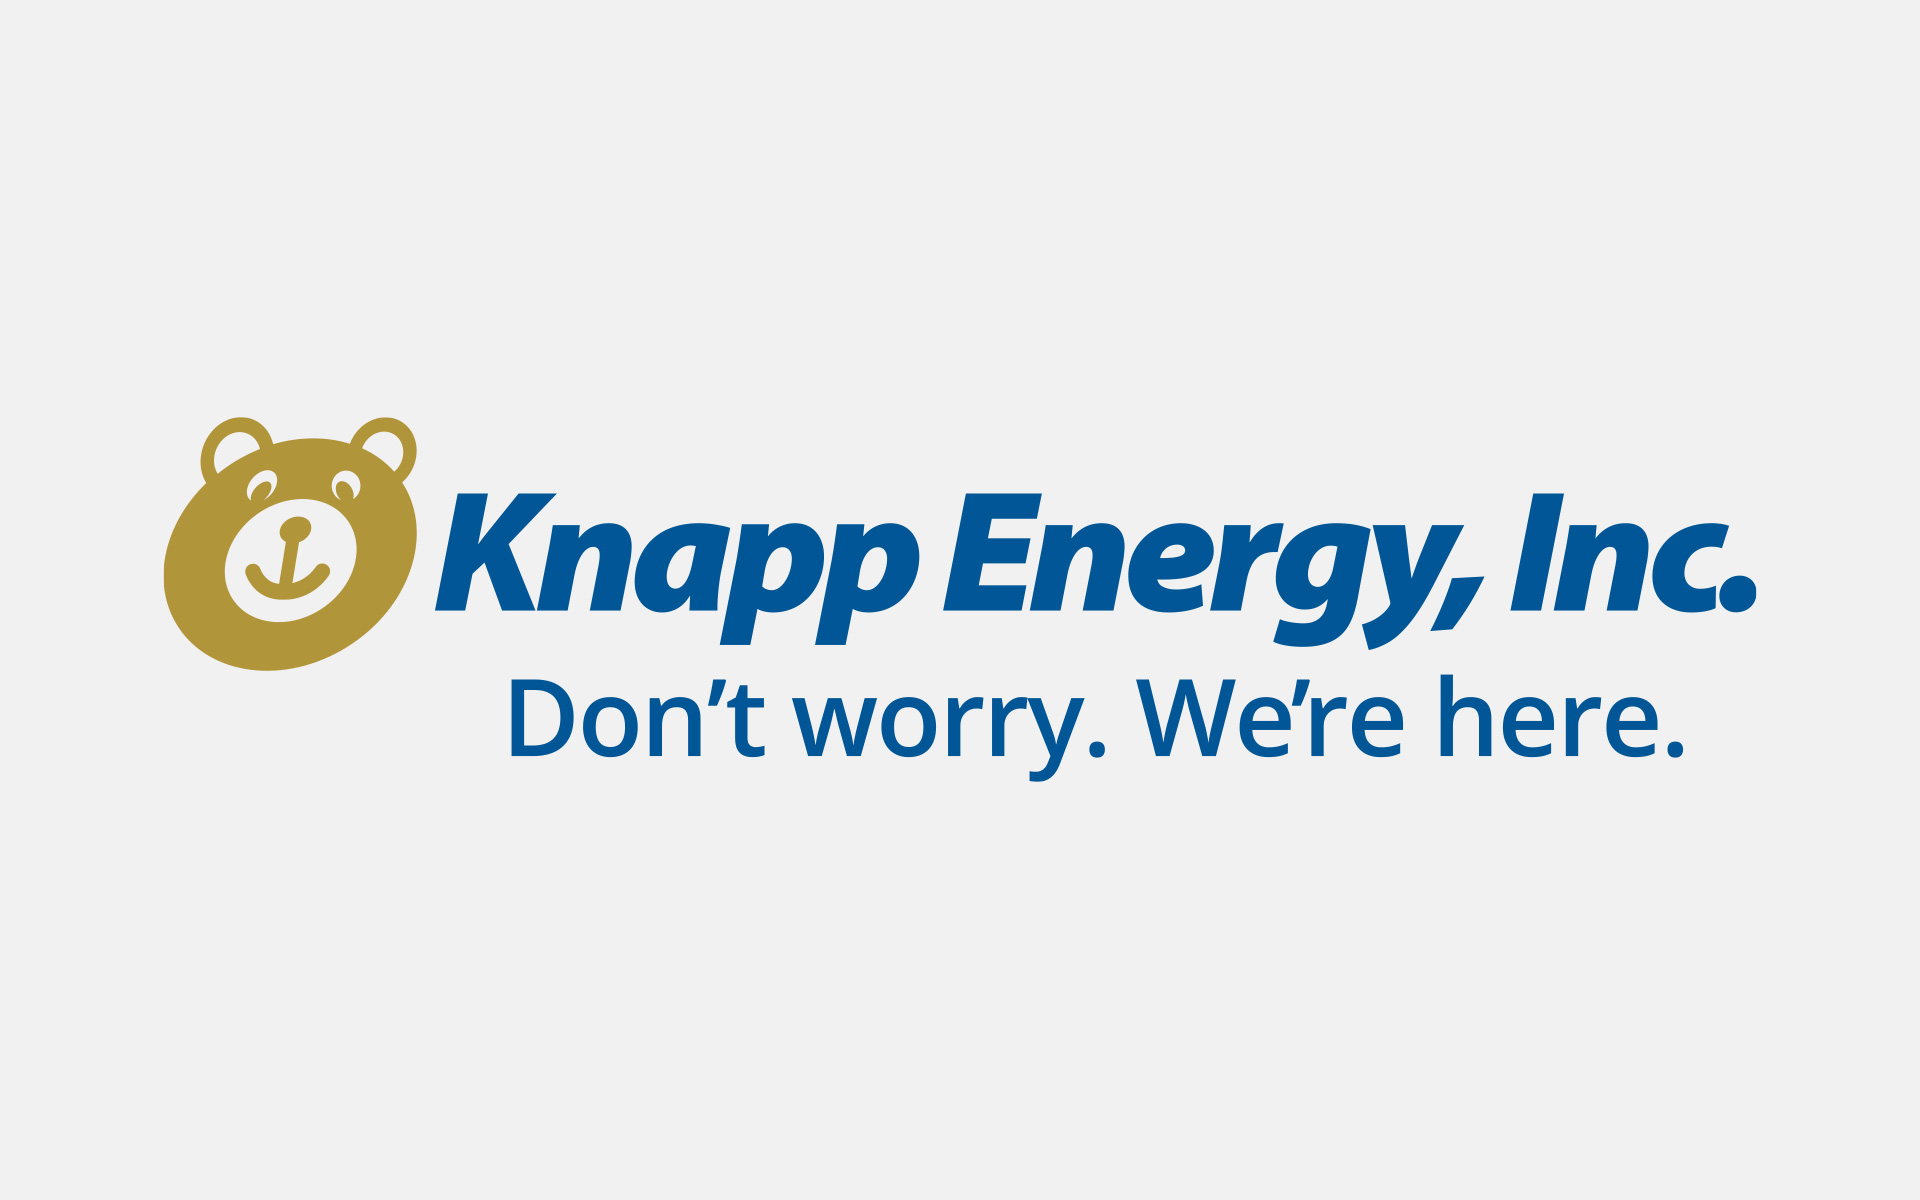 Branding - Knapp Energy, Inc.